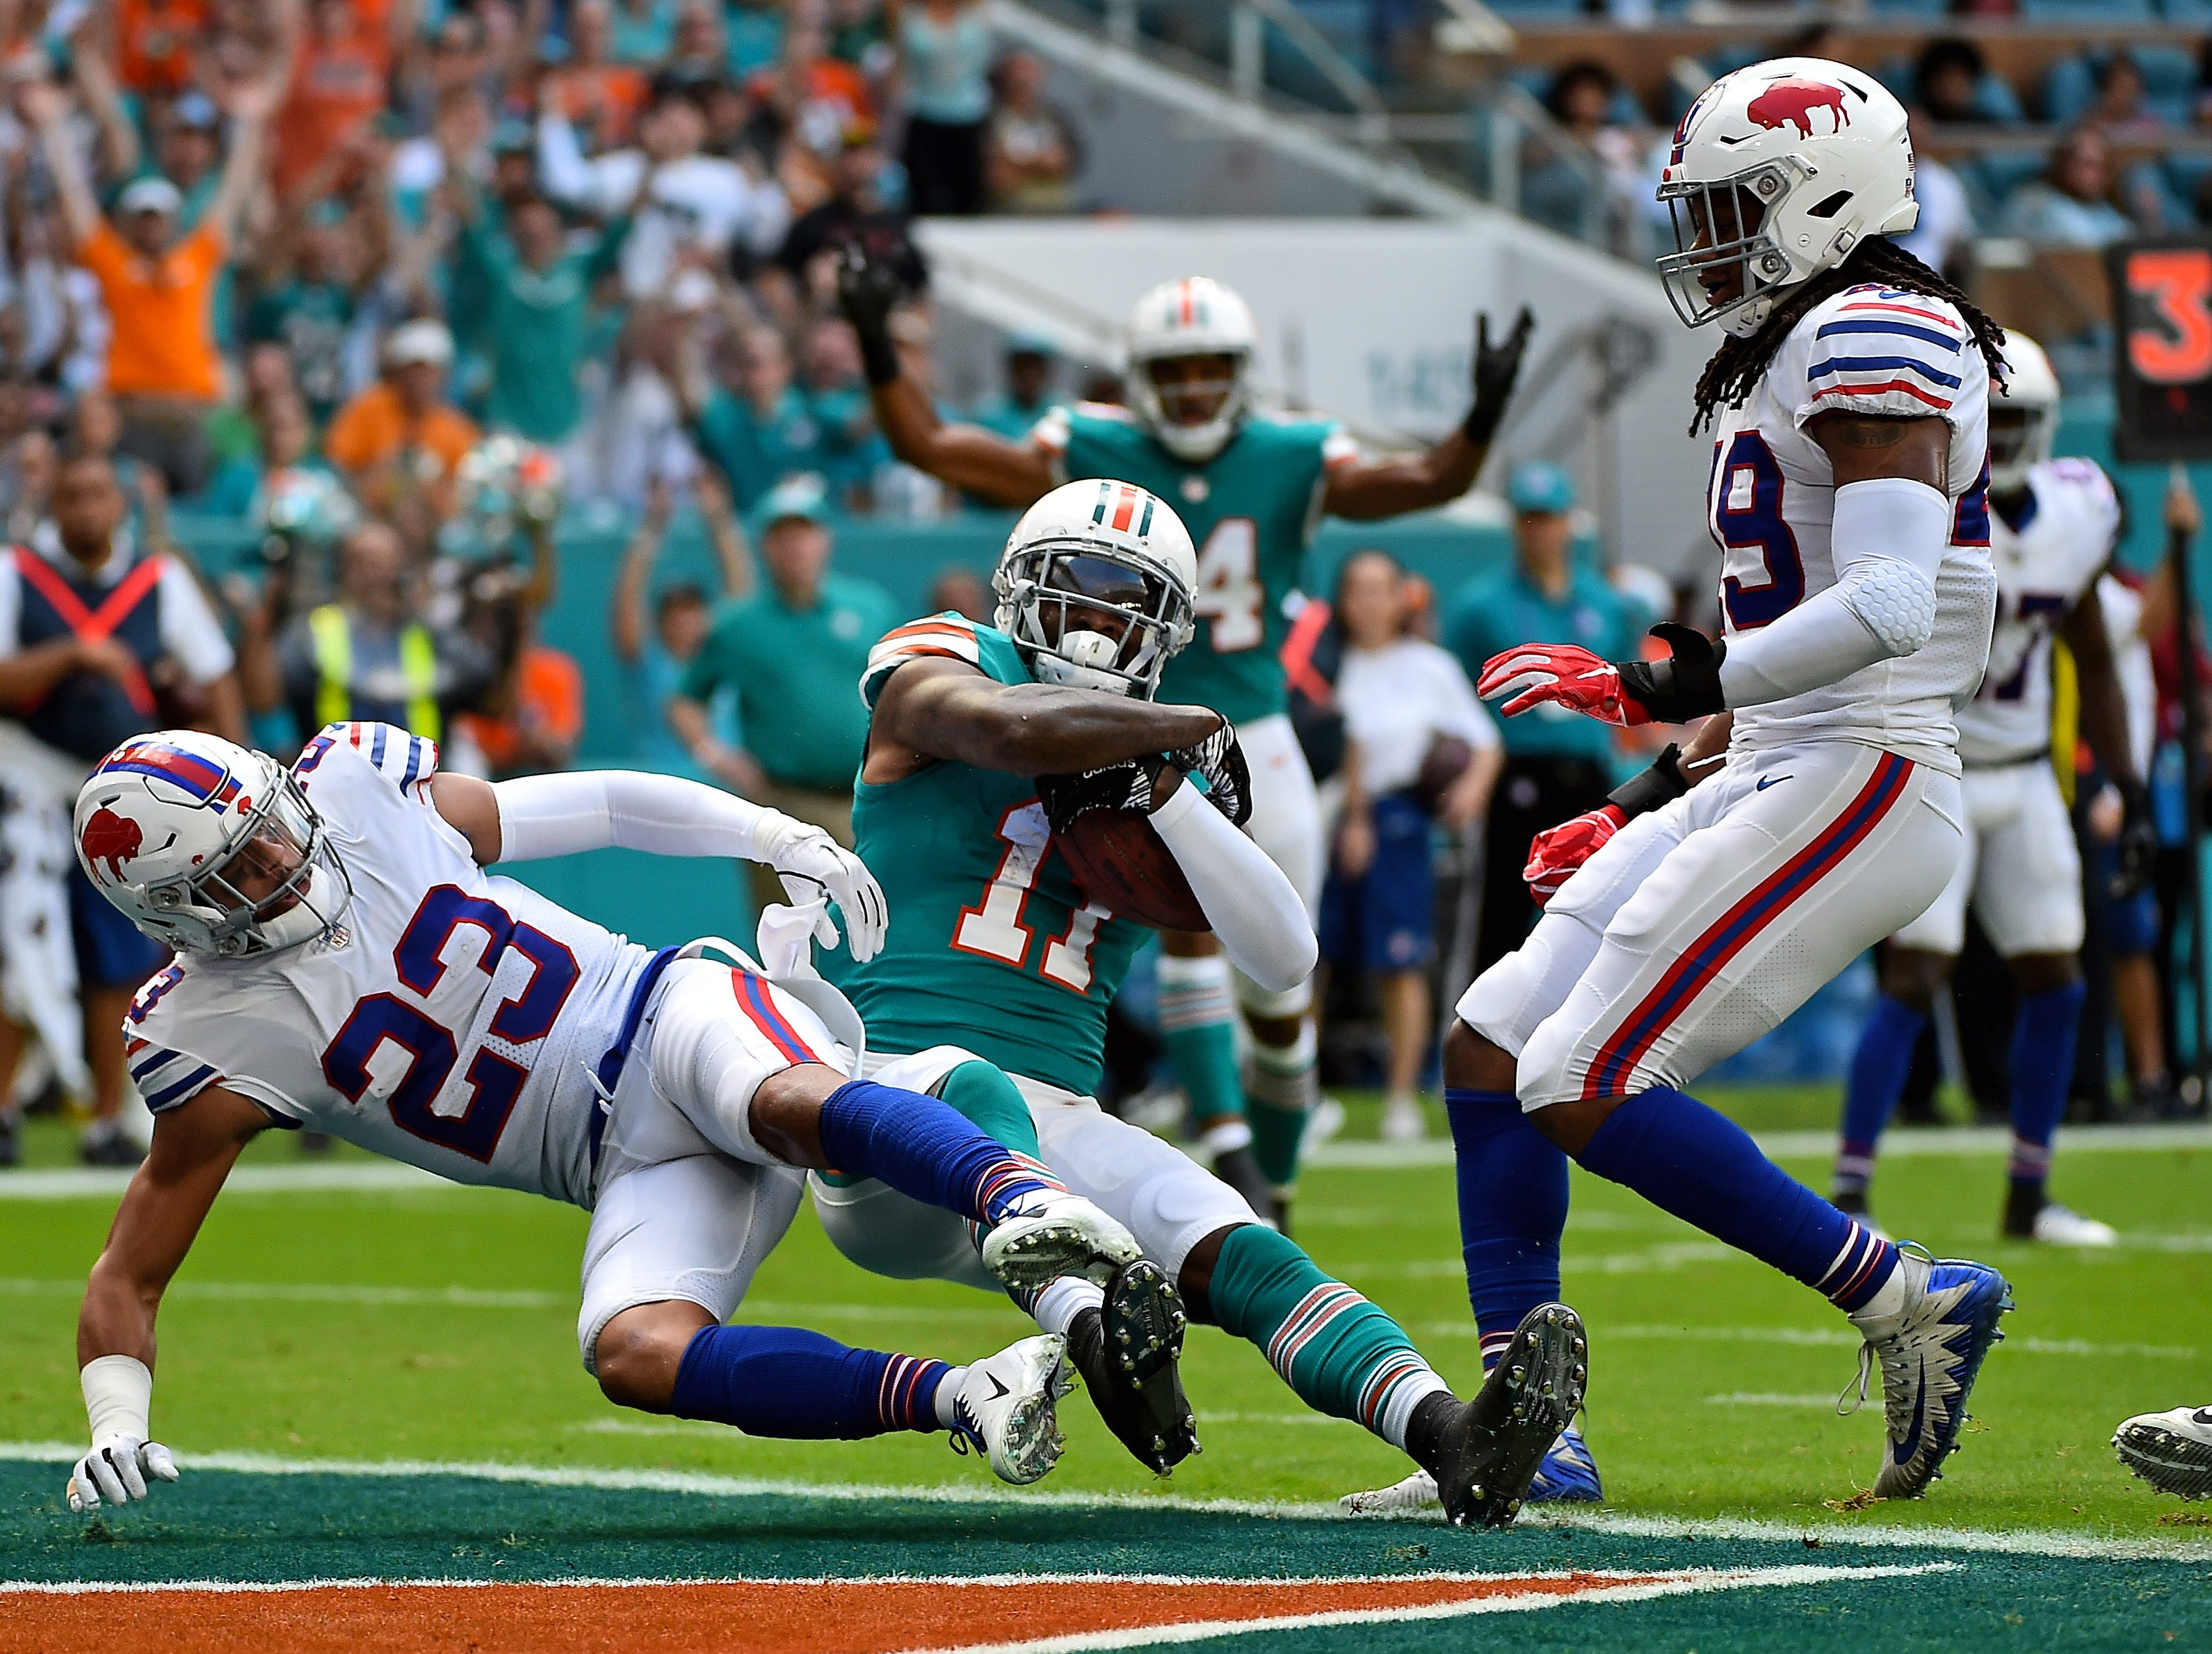 Dec 2, 2018; Miami Gardens, FL, USA; Miami Dolphins wide receiver DeVante Parker (11) makes a catch for a touchdown against the Buffalo Bills during the first half at Hard Rock Stadium. Mandatory Credit: Jasen Vinlove-USA TODAY Sports